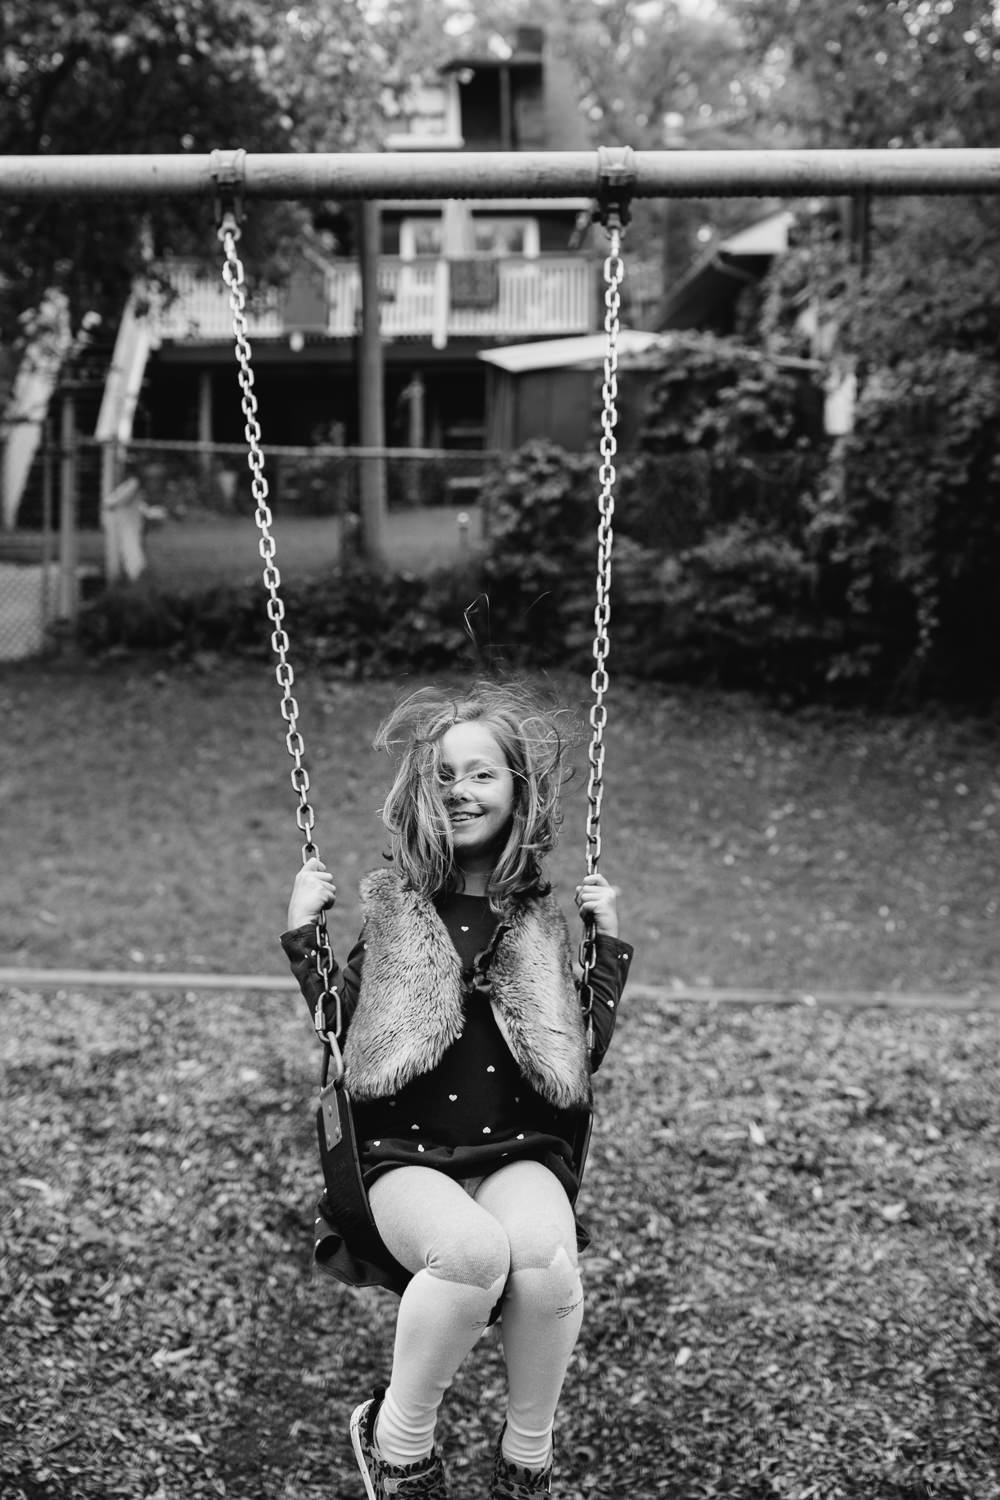 7 year old girl sitting on swing in city park, hair flying in her face as she move backwards, smiling at camera - York Region In-Home Photography